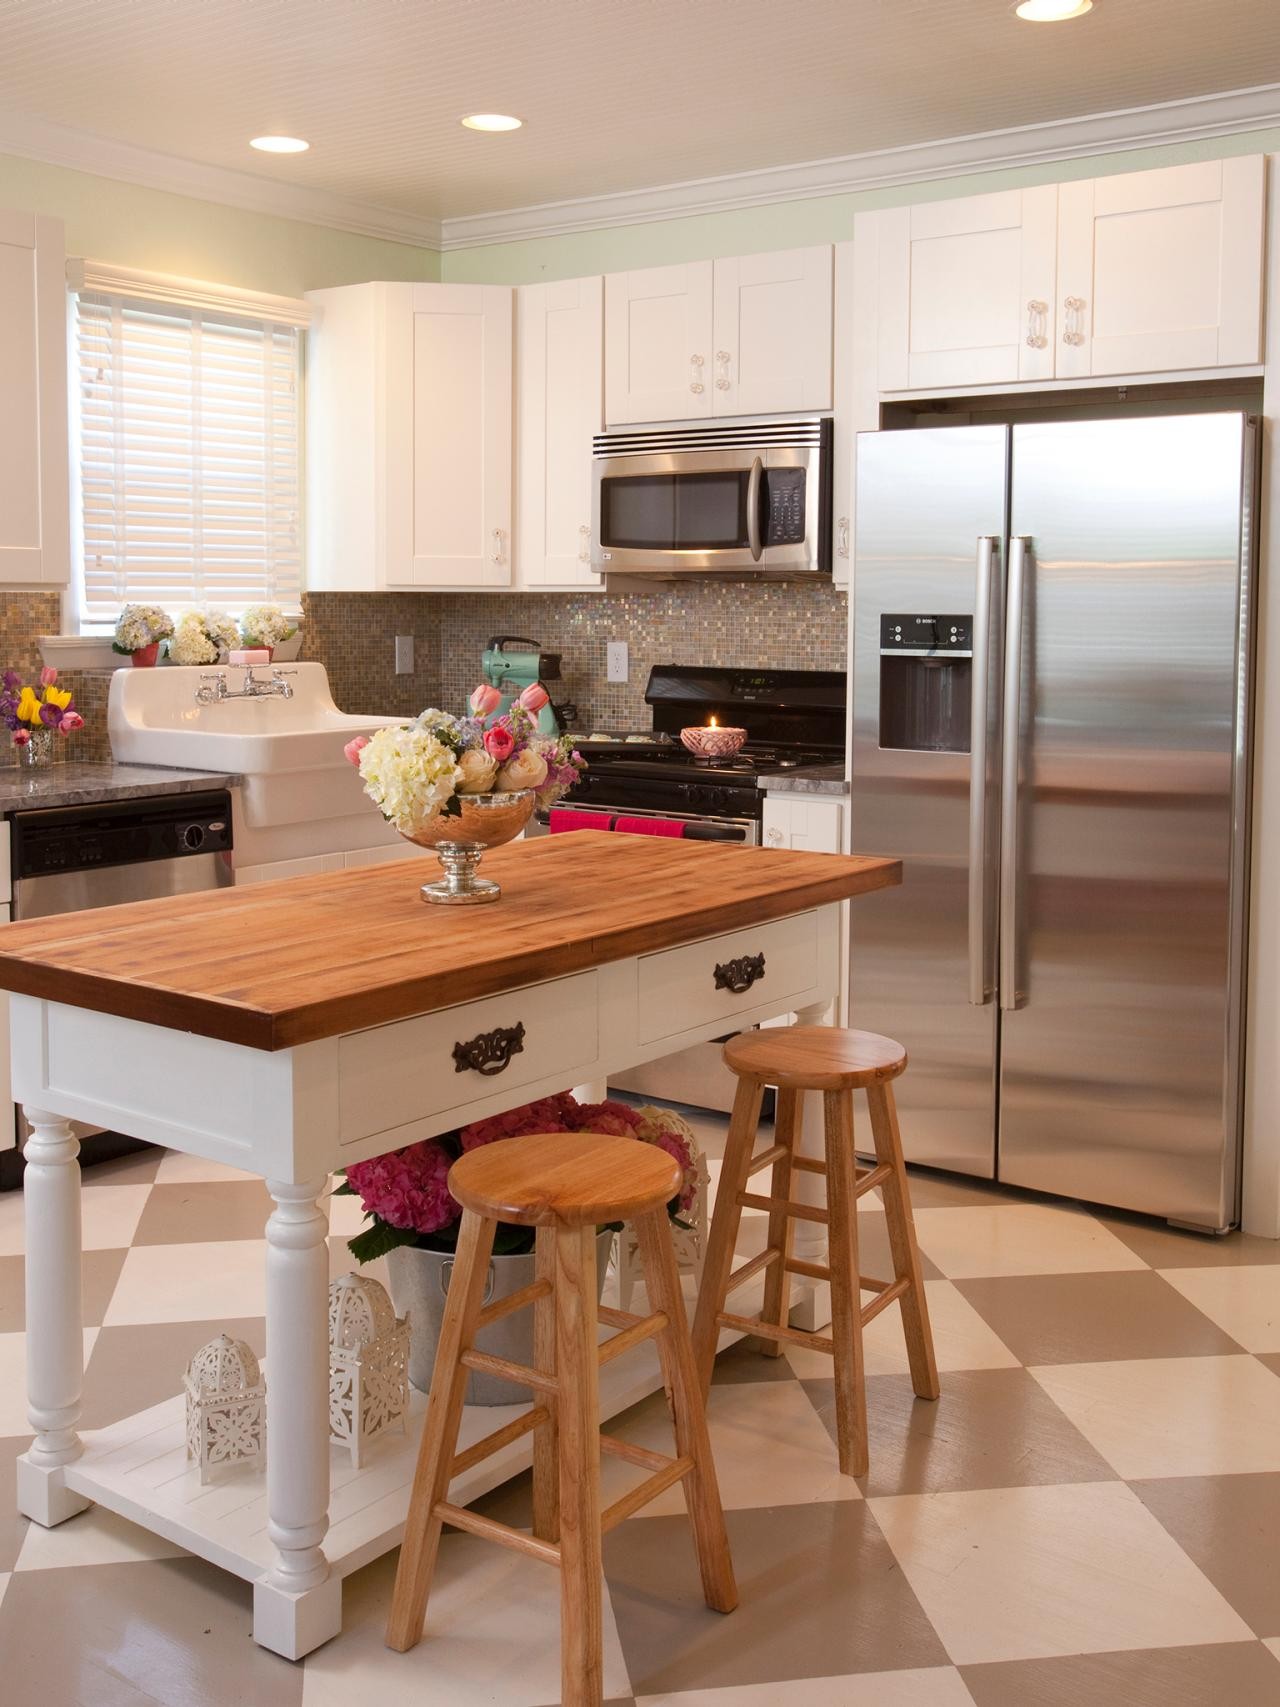 Island Kitchen Designs Layouts small kitchen layouts: pictures, ideas & tips from hgtv | hgtv